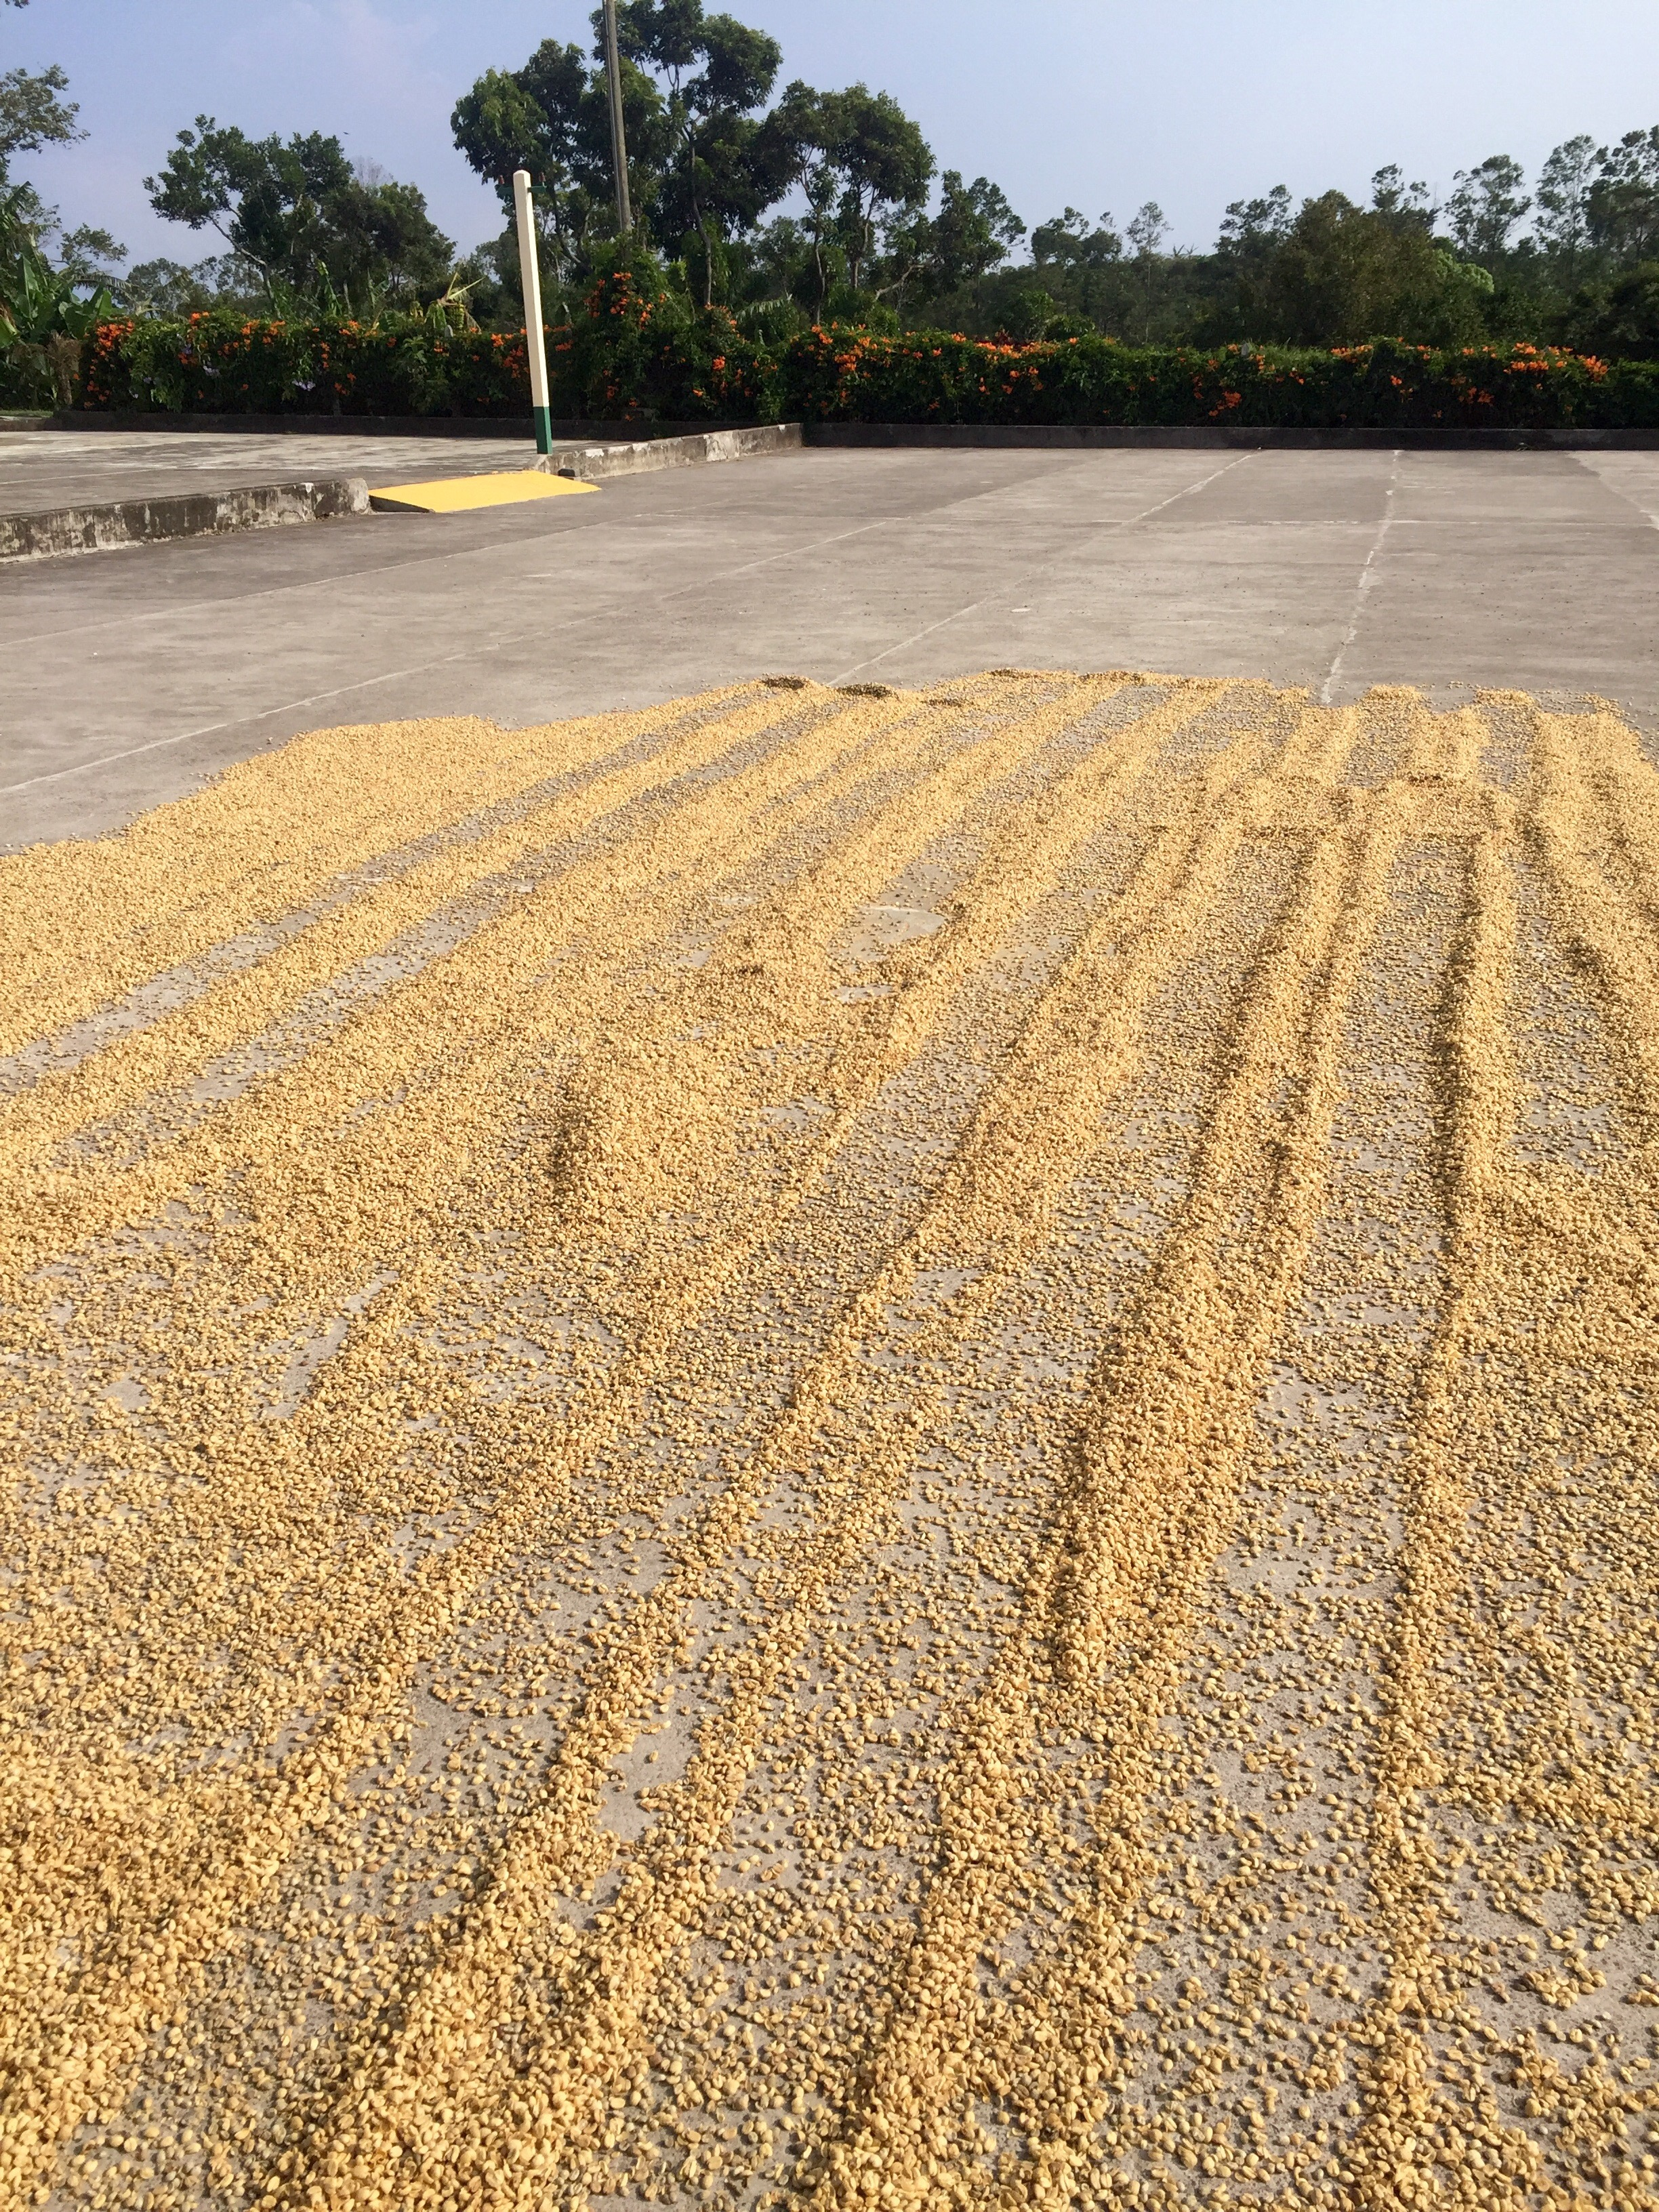 The process of drying coffee beans at Doke Estate.